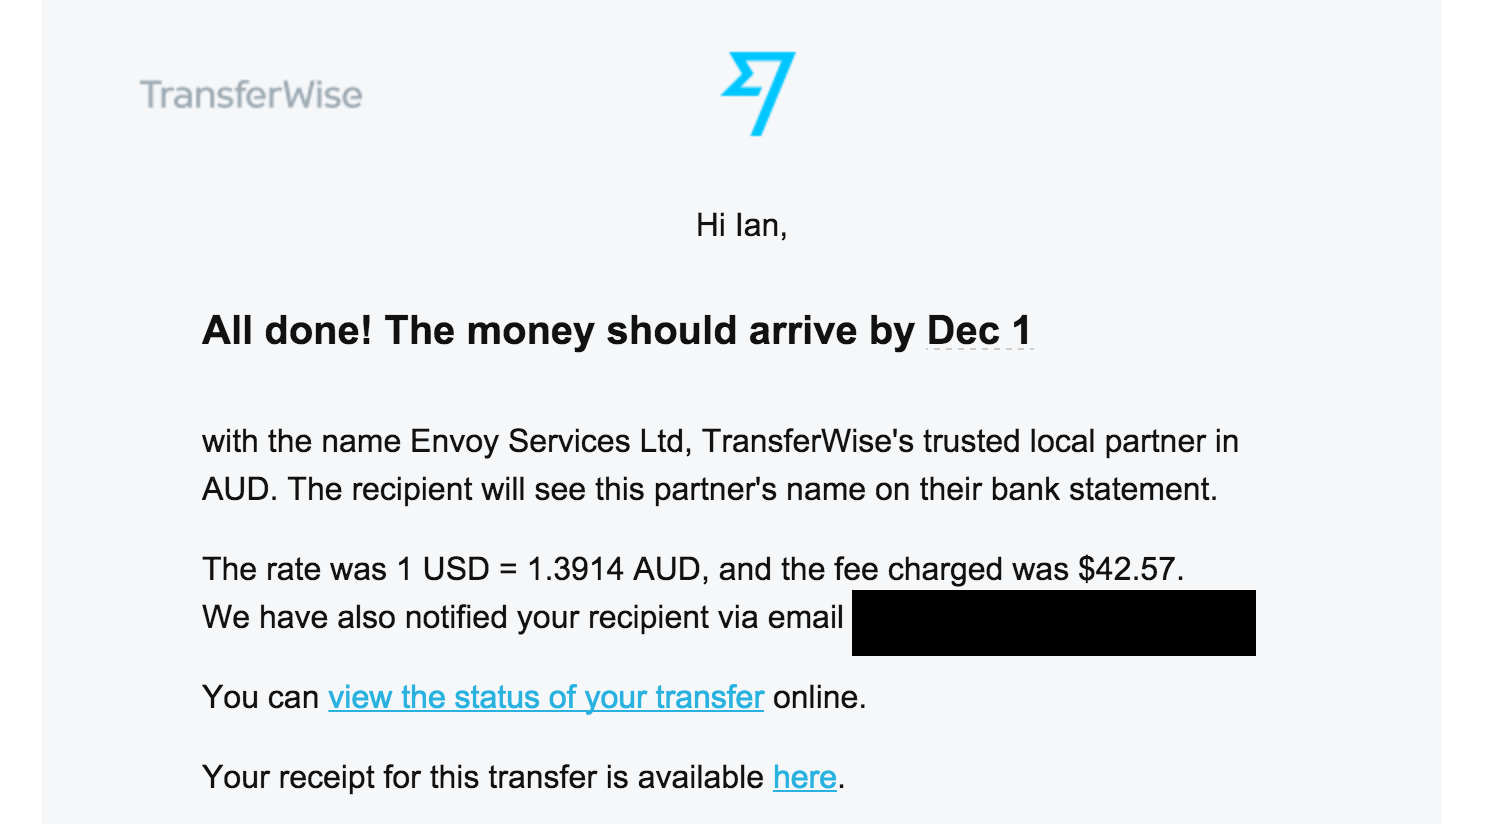 TransferWise Review - Final Receipt